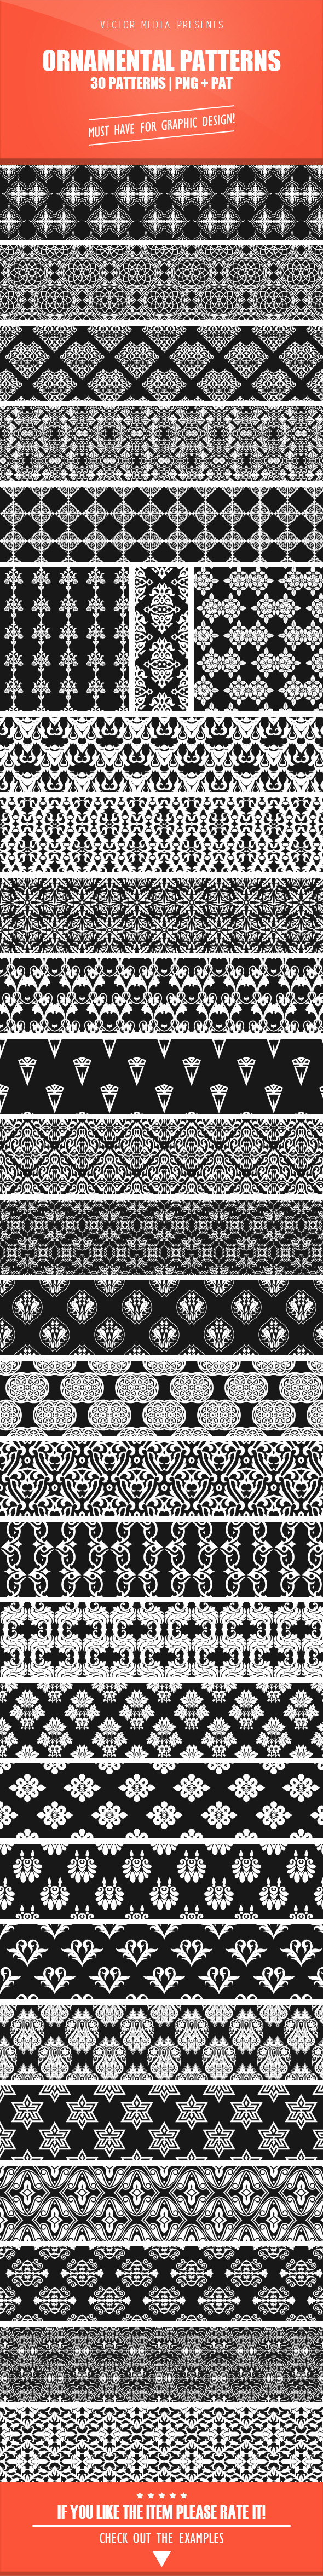 Ornamental Patterns - Artistic Textures / Fills / Patterns